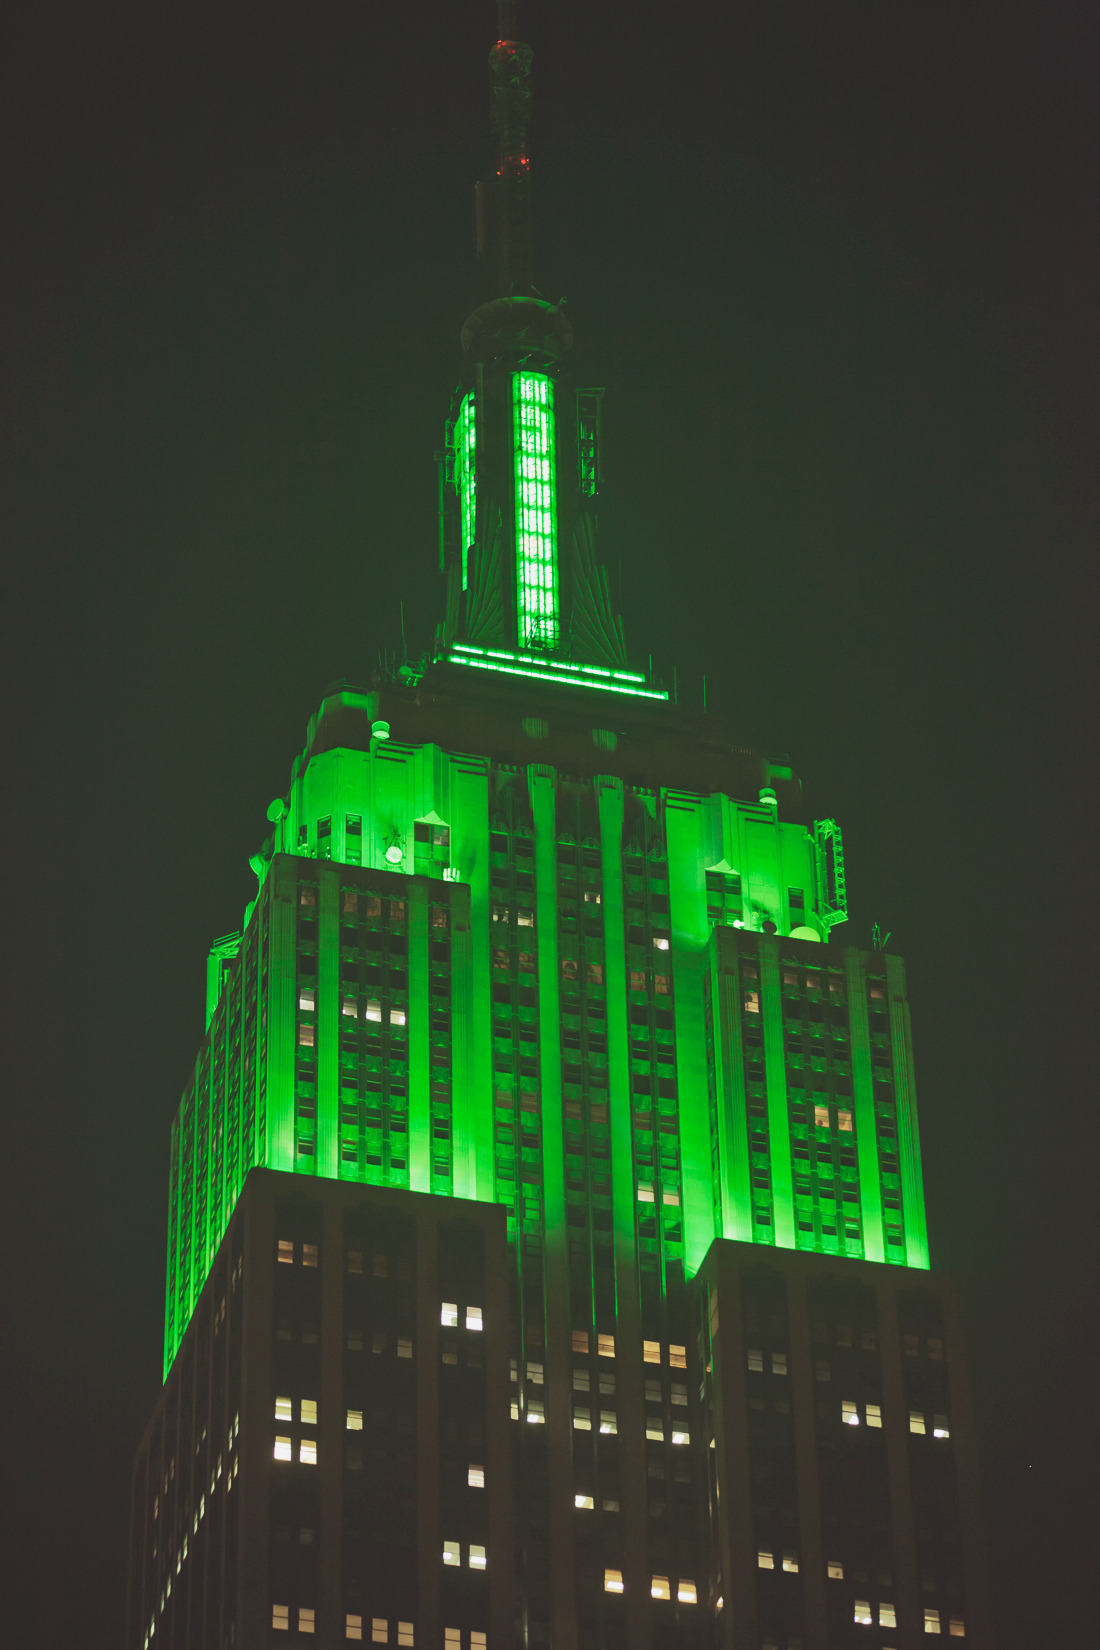 moeysphotography:  Happy St. Patrick's Day everyone, enjoy! (by Moey Hoque)